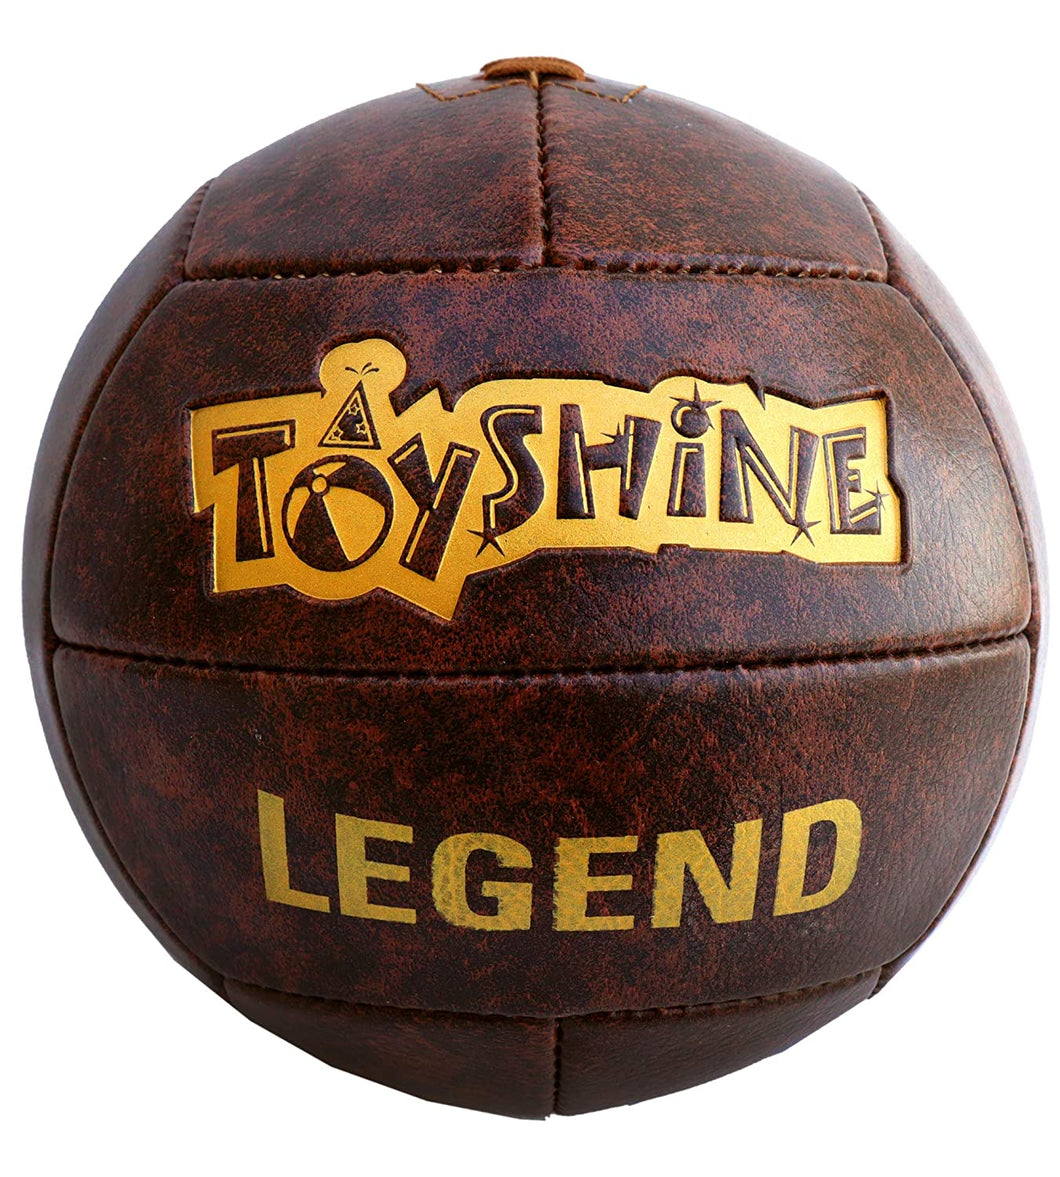 Toyshine Legend Home Football 5 No, Leather Look, Hand Stiched | Perfect for Home Parties, Games, Kids Play (Sports-48)